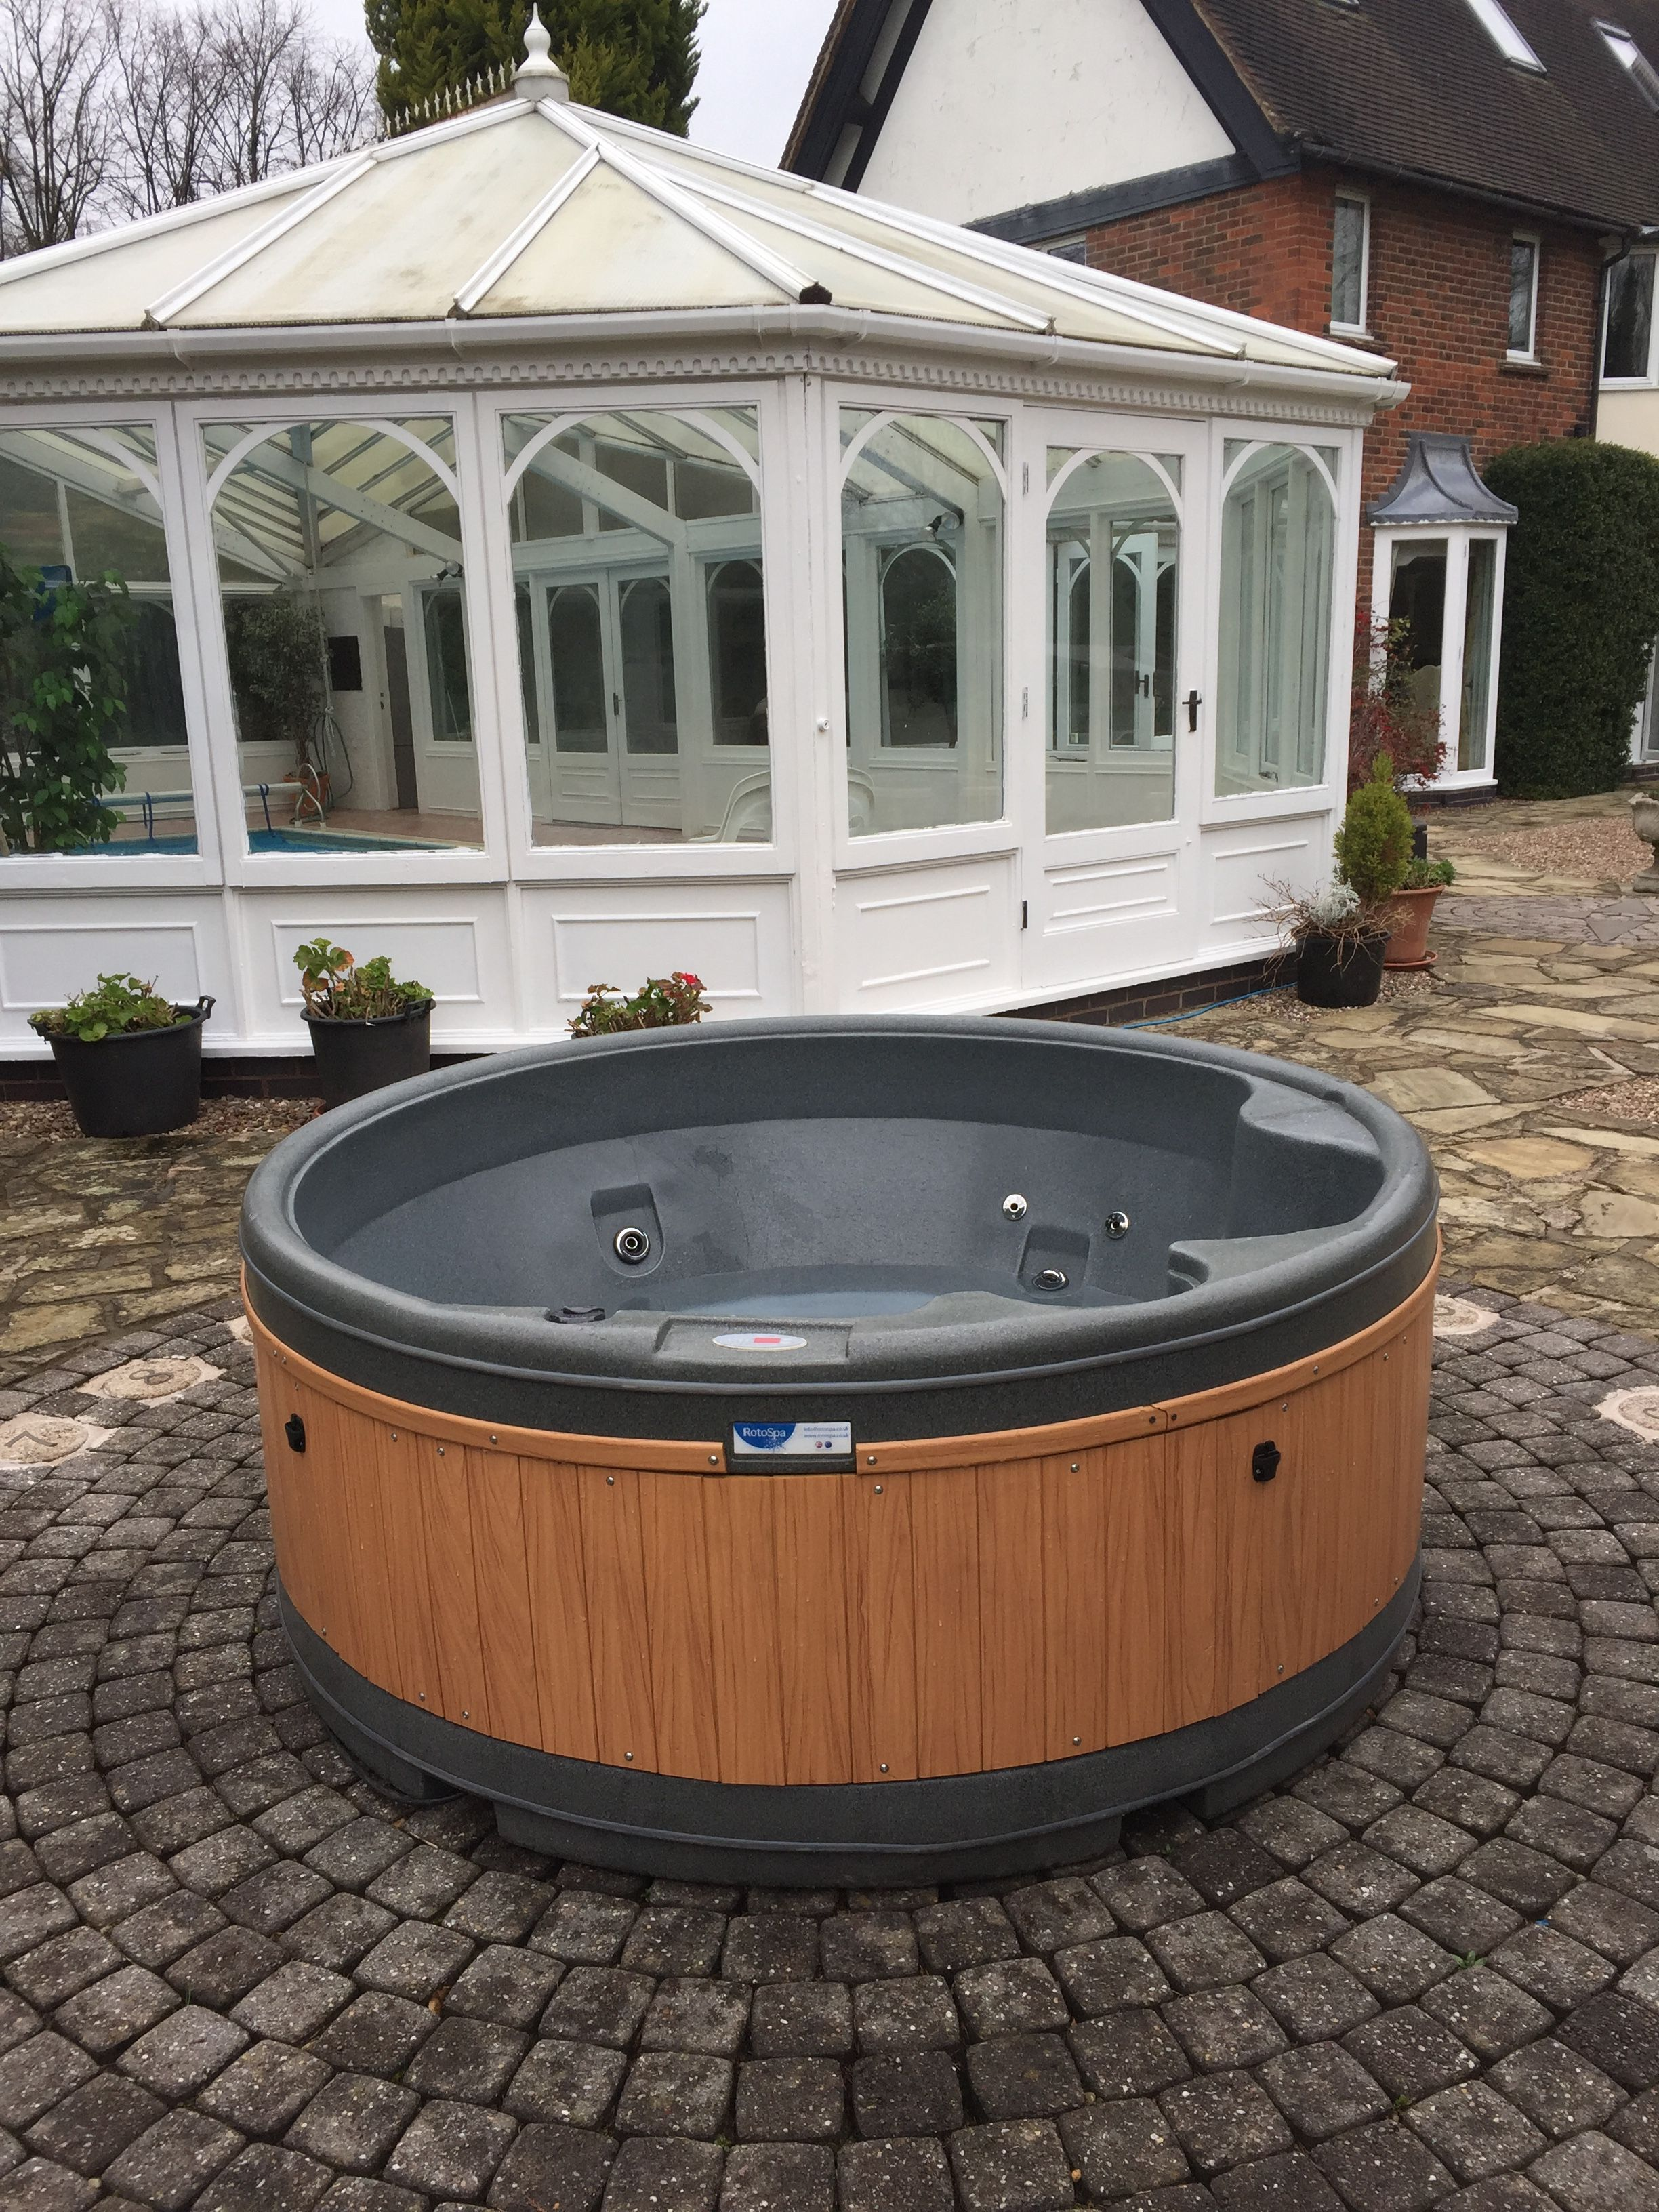 toronto springs tub manufacturer in hot spa prices products garden